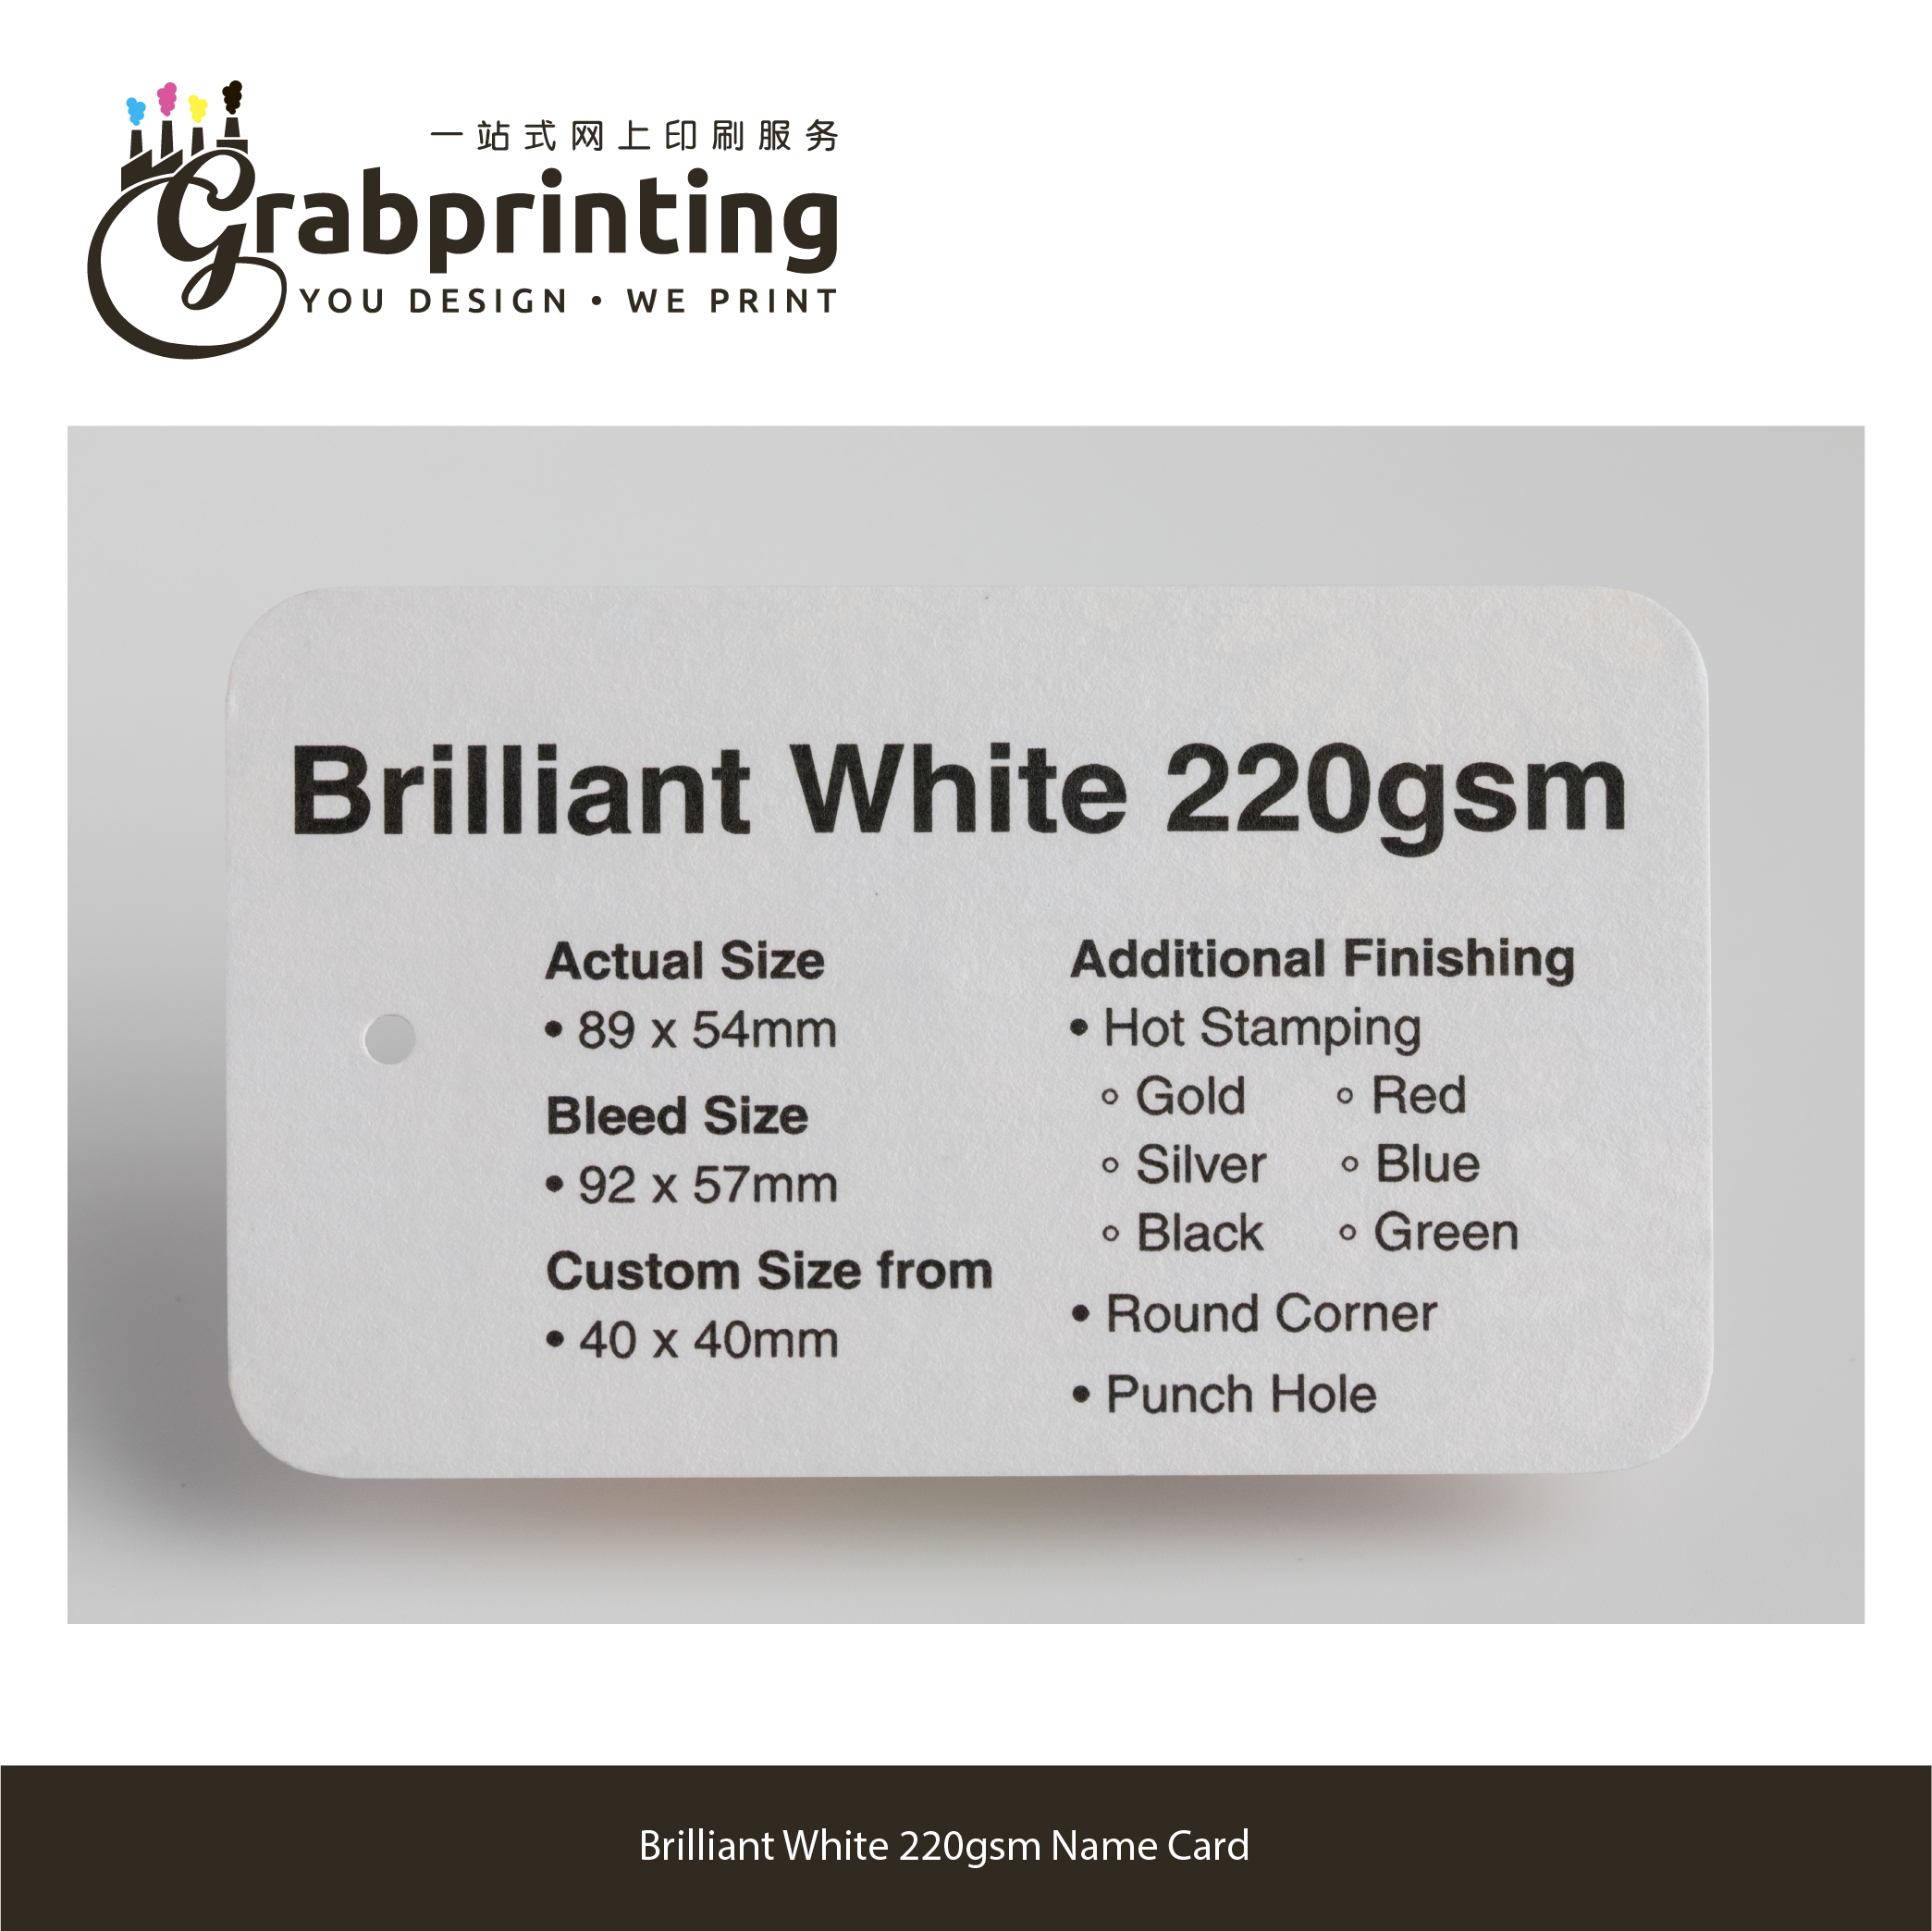 name cards Name Card (23 materials to choose from) grabprinting 48 Brilliant White 220gsm Name Card 501px 501px